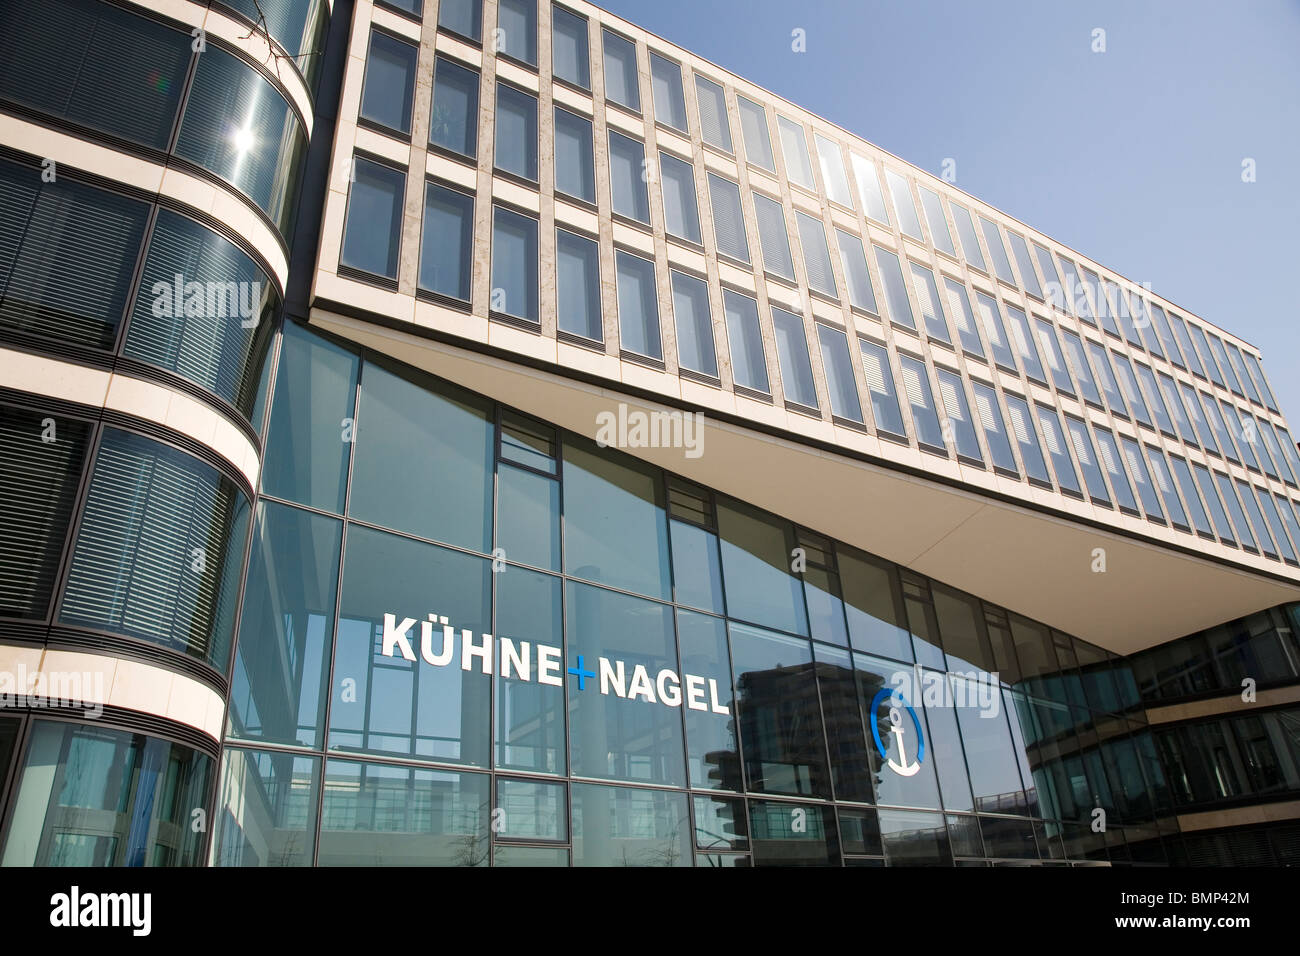 The Kuehne und Nagel office in the HafenCity area of Hamburg, Germany. Stock Photo